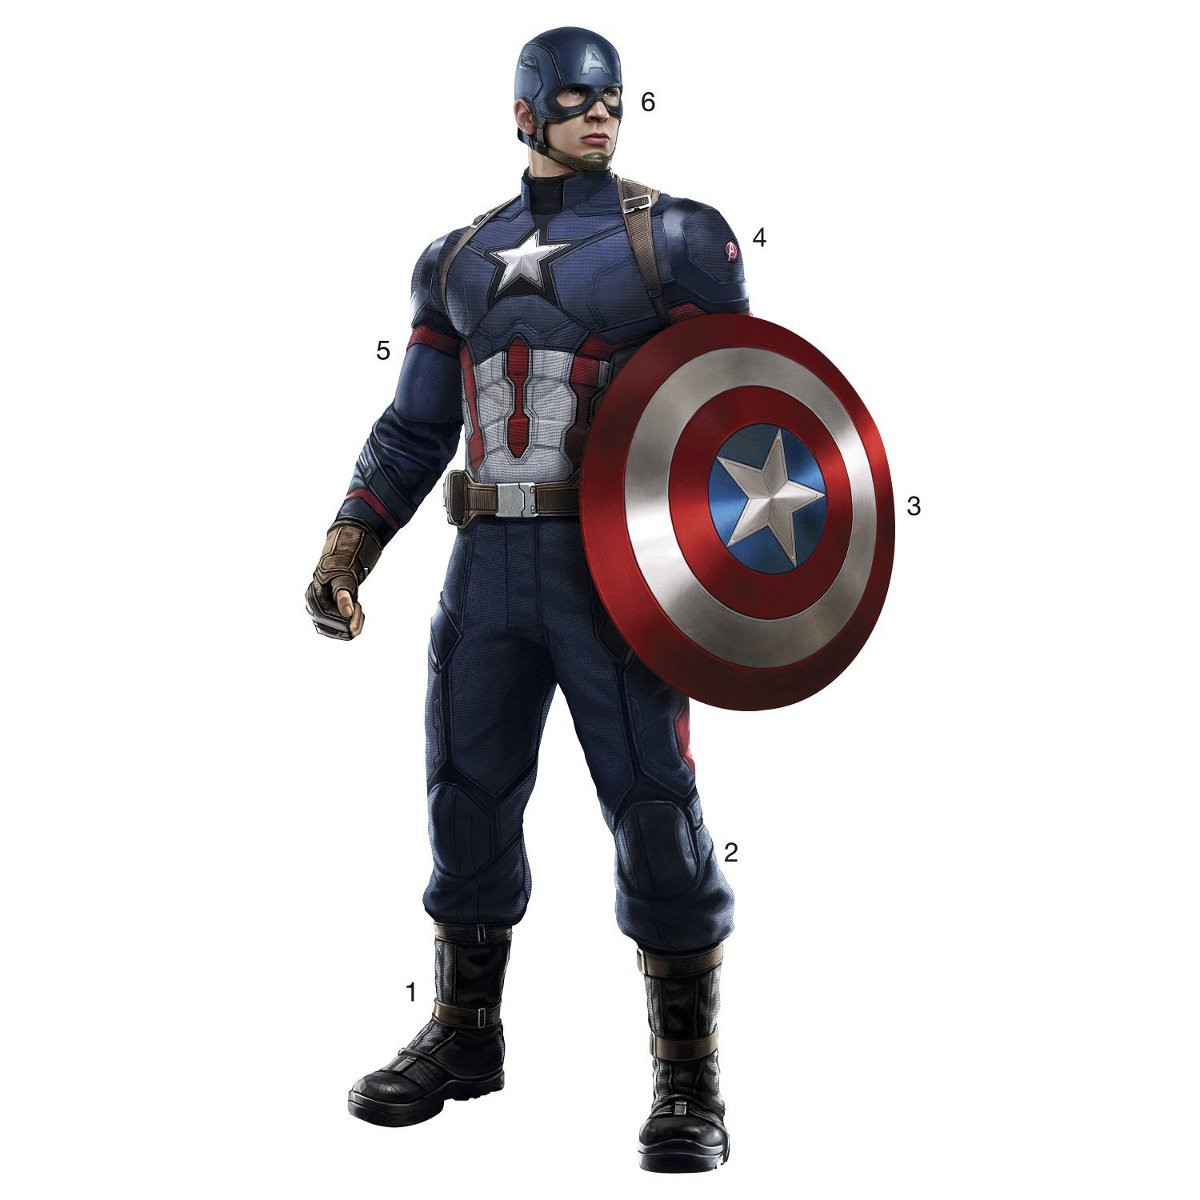 Stickers Avengers Civil War Captain America Marvel